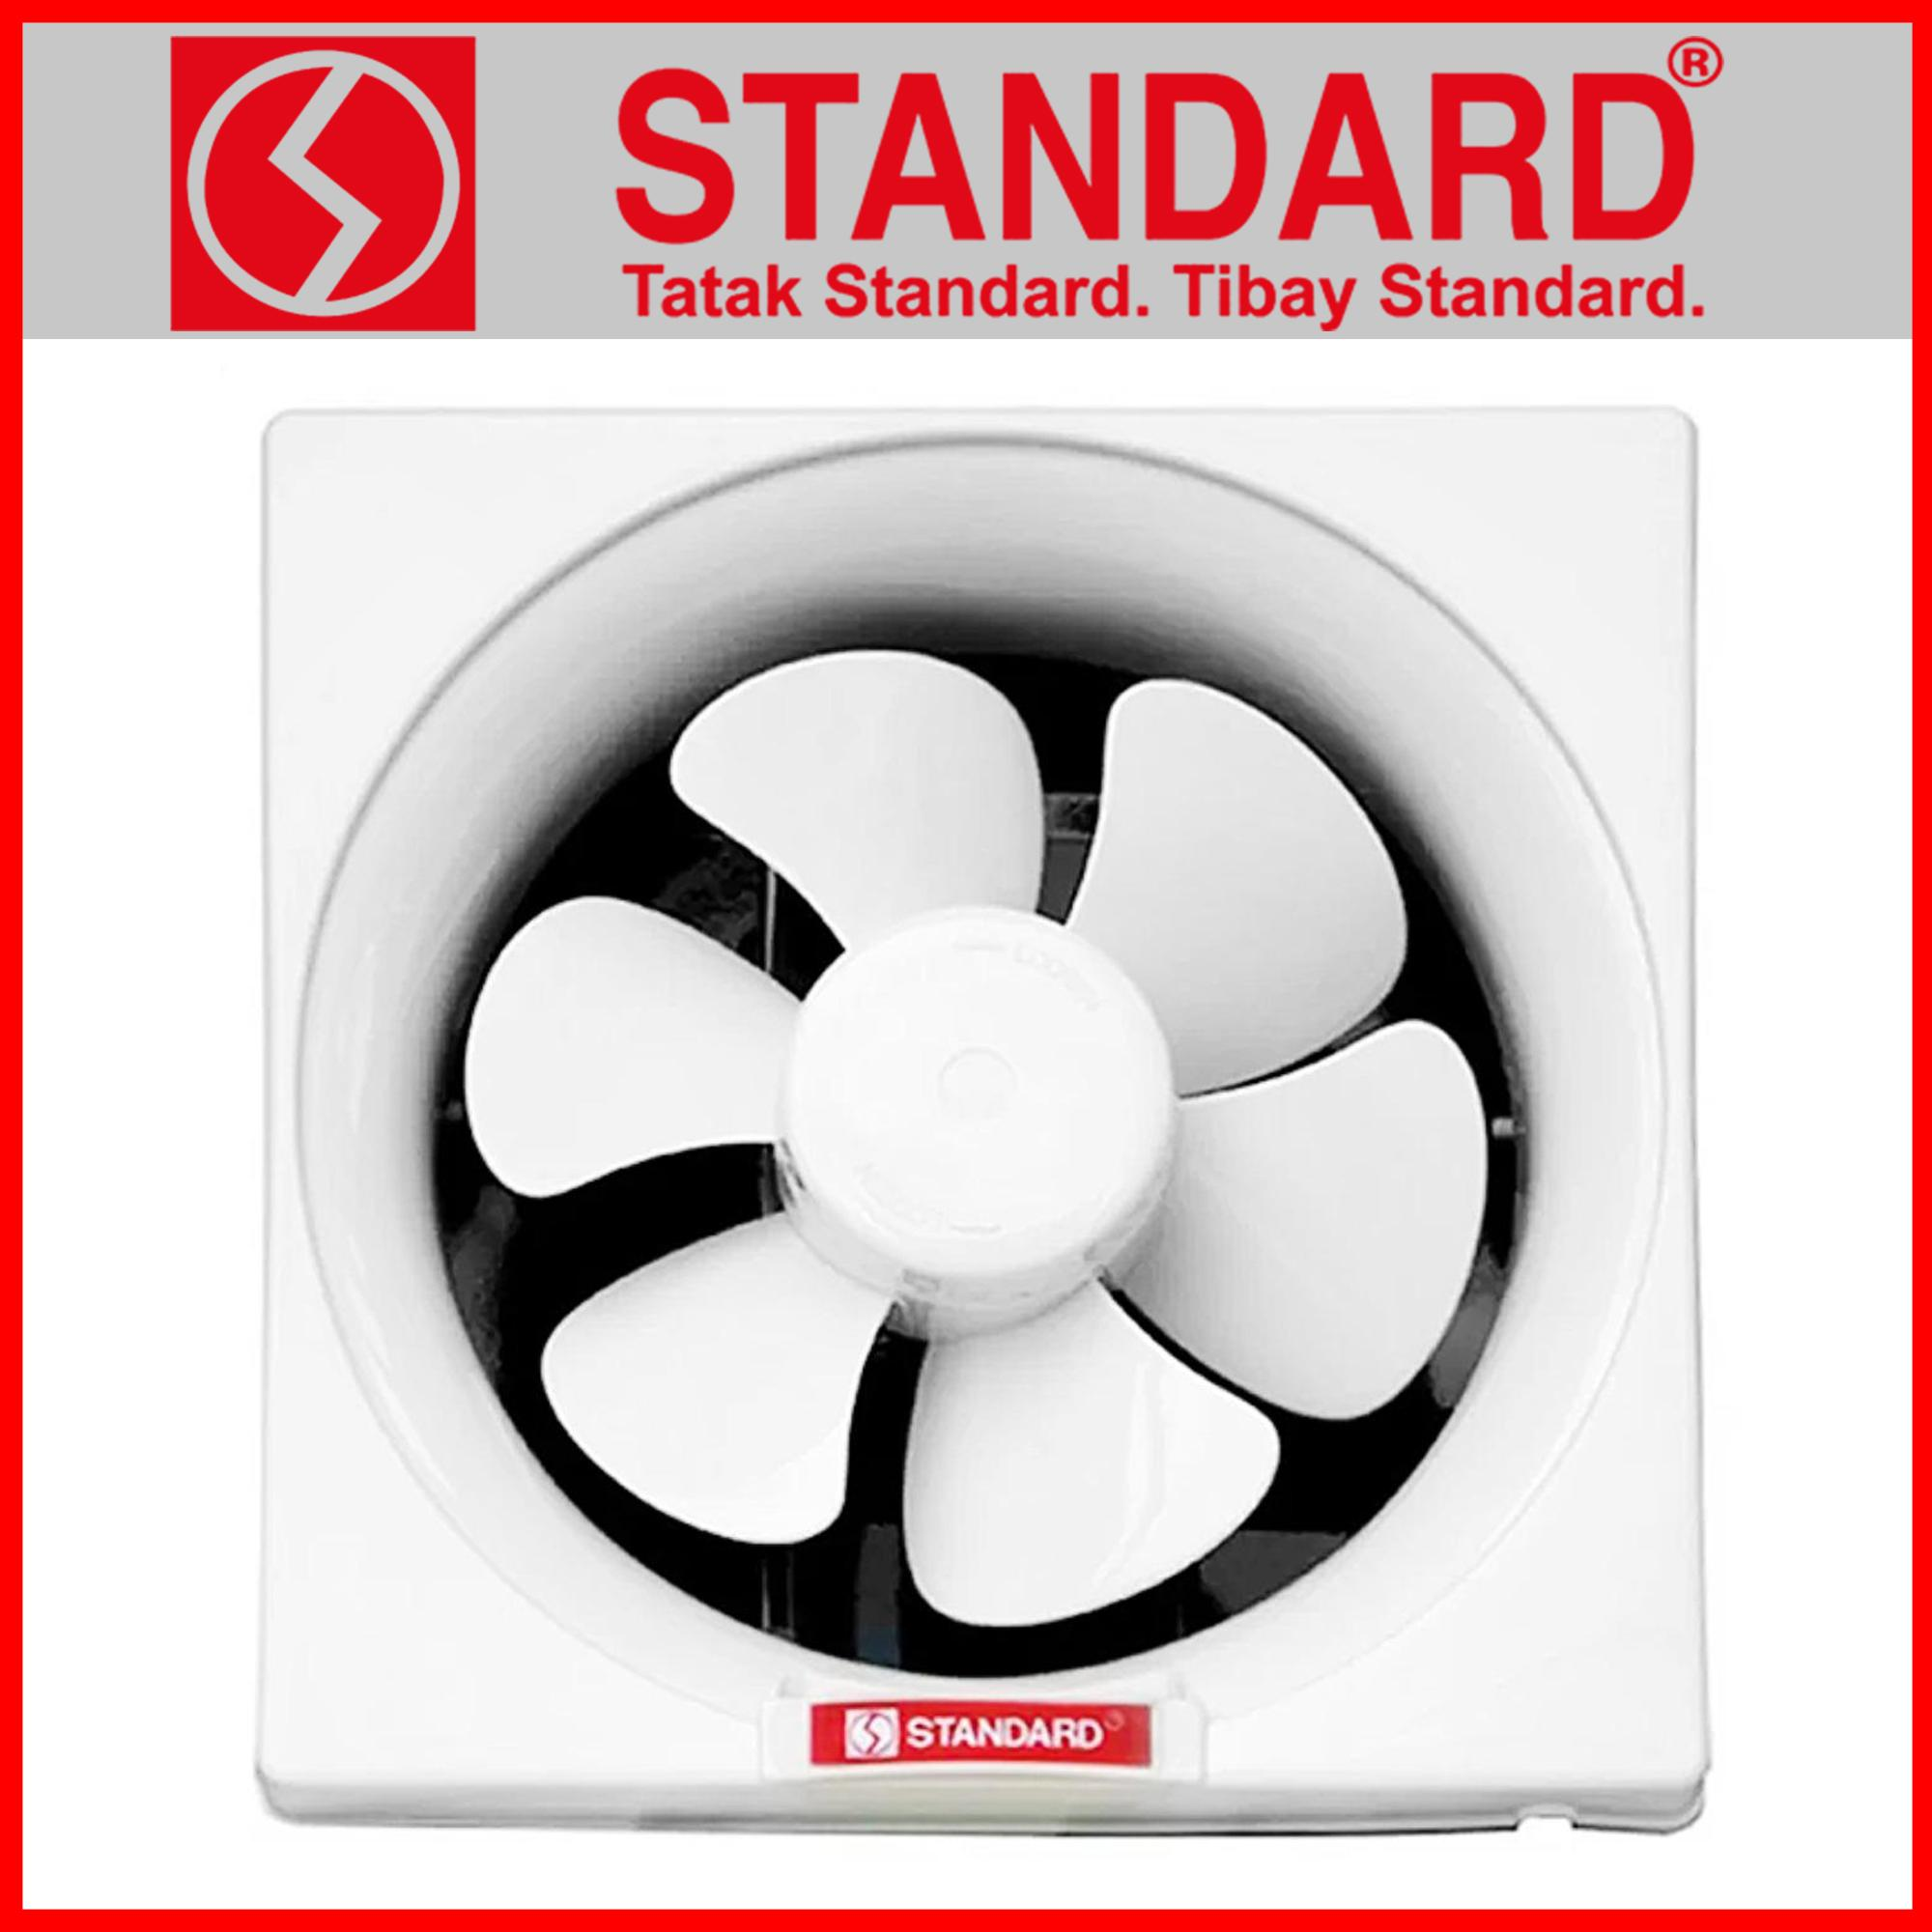 Standard Wall Exhaust Fan 10 inches